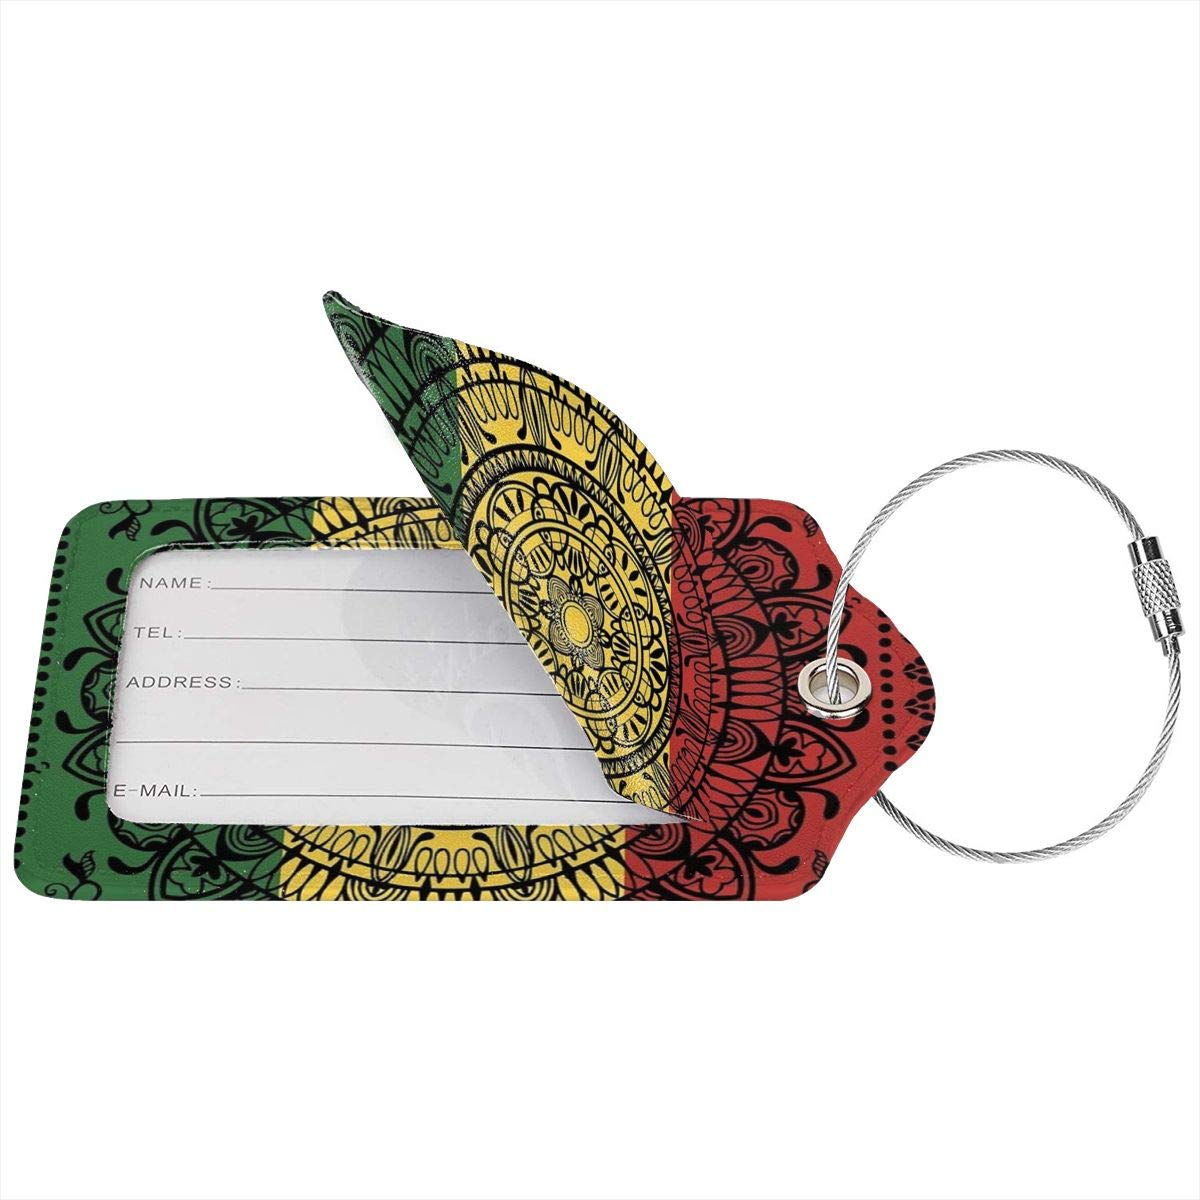 Leather Luggage Tag Rasta Monladax Luggage Tags For Suitcase Travel Lover Gifts For Men Women 2 PCS